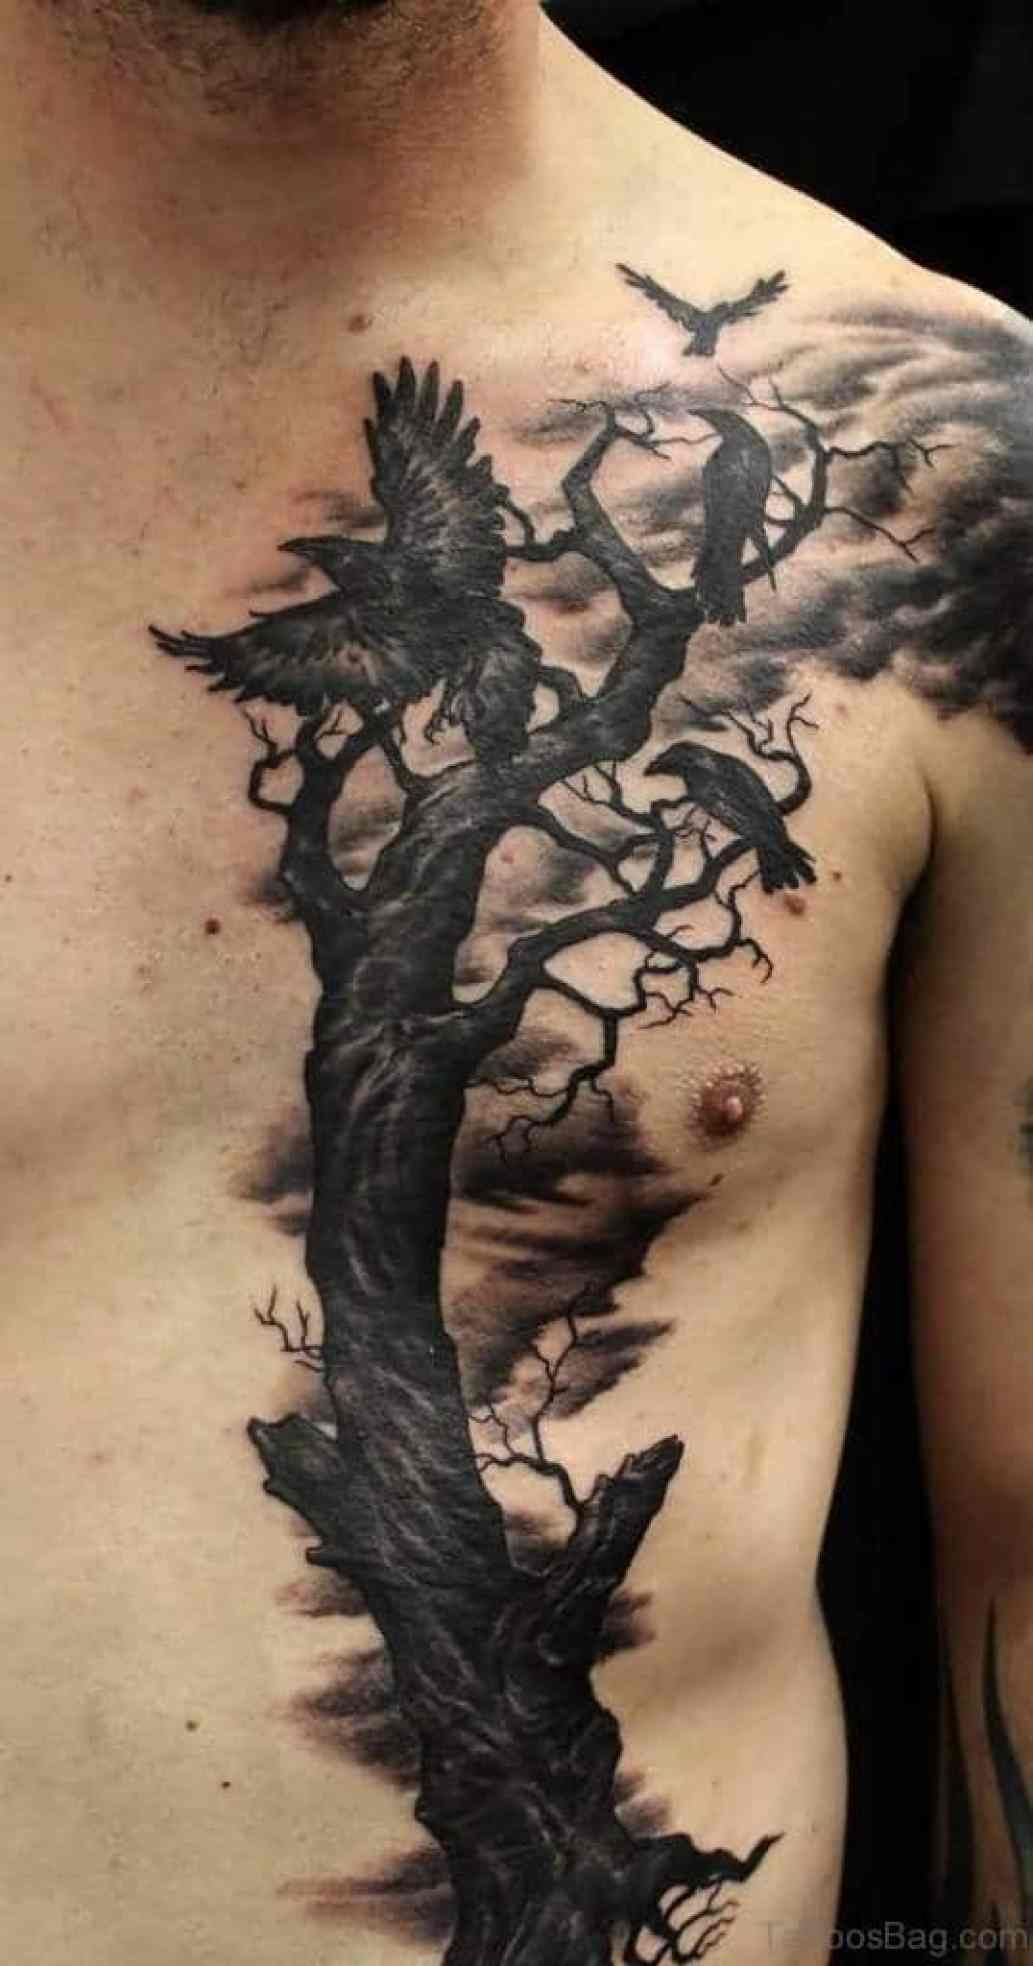 Amazing Dry Tree And Raven Chest Tattoo